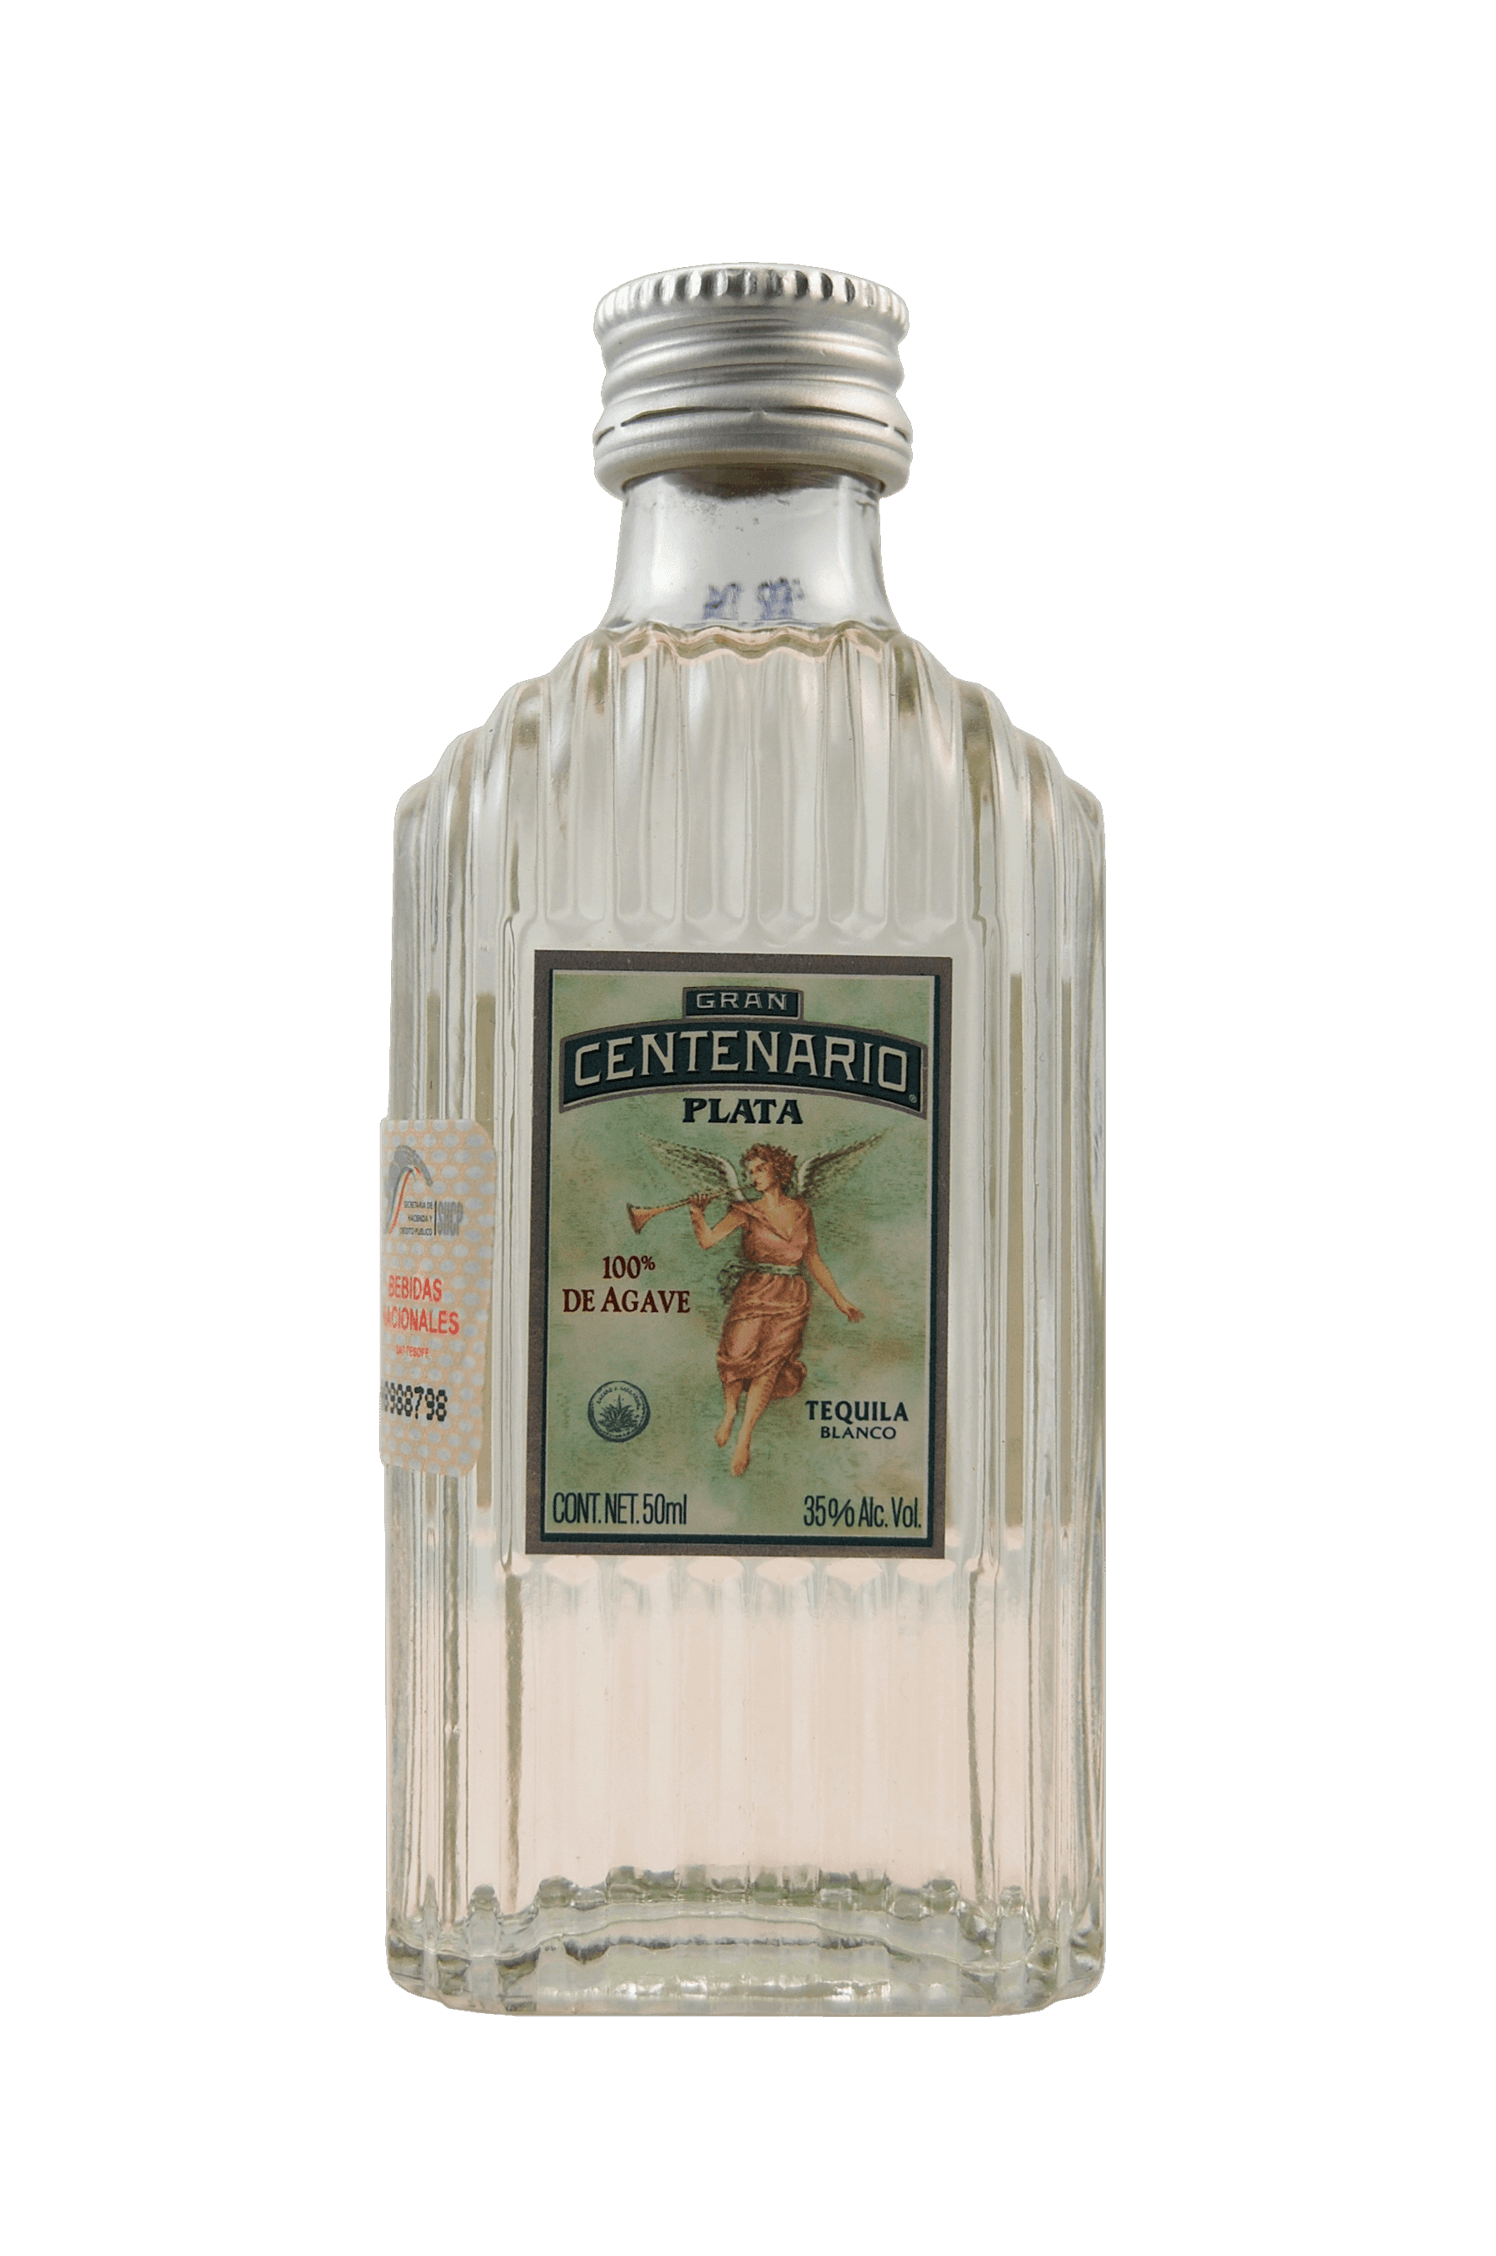 Tequila Blanco